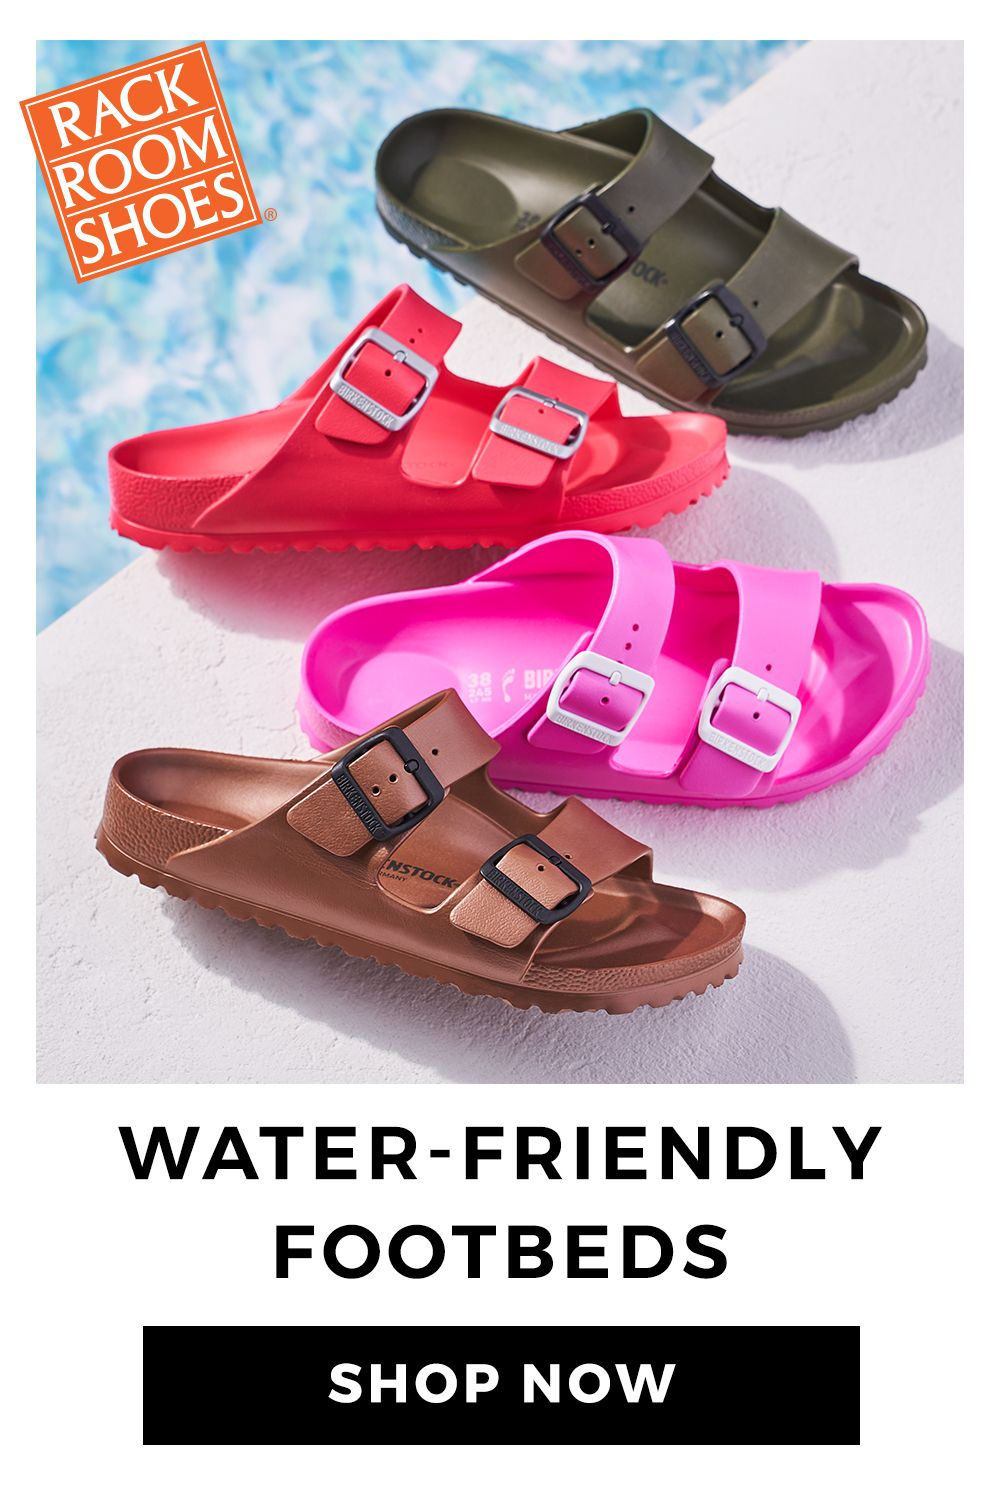 6f1b64093 Splash into Summer with sandals perfect for the pool. Available at Rack  Room Shoes.